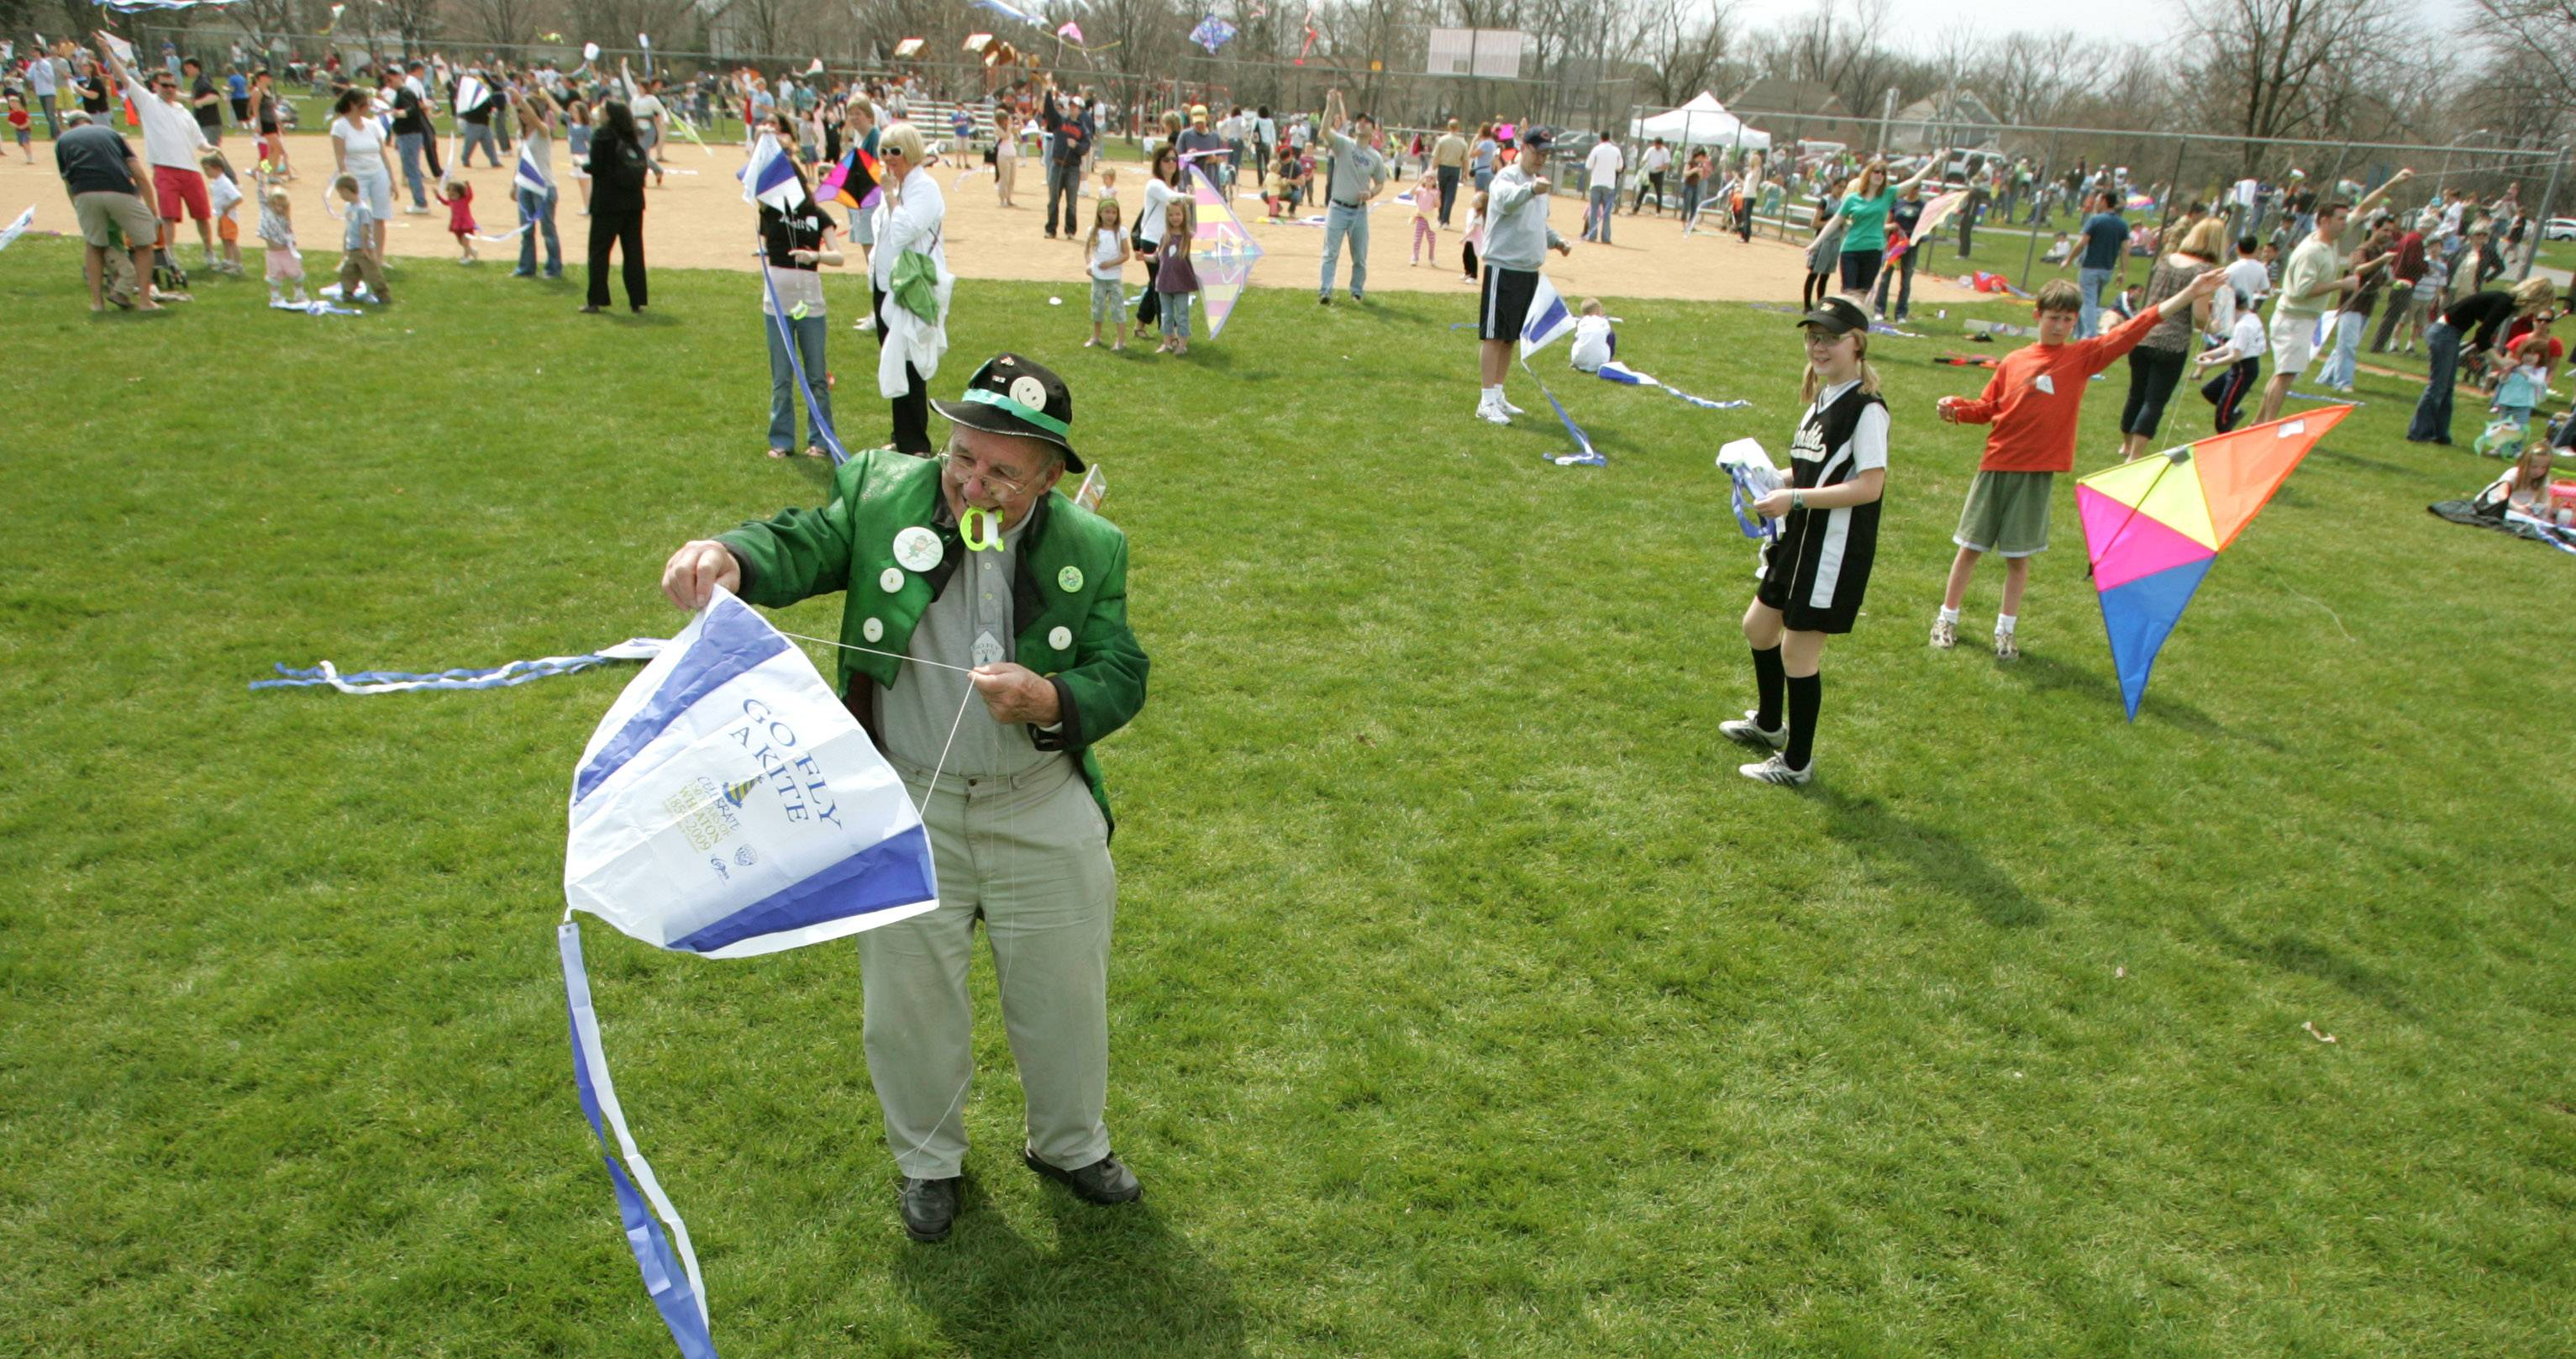 The annual Go Fly a Kite event in Wheaton will include a grand launch at 11 a.m., when all the participants will fly their kites at the same time.